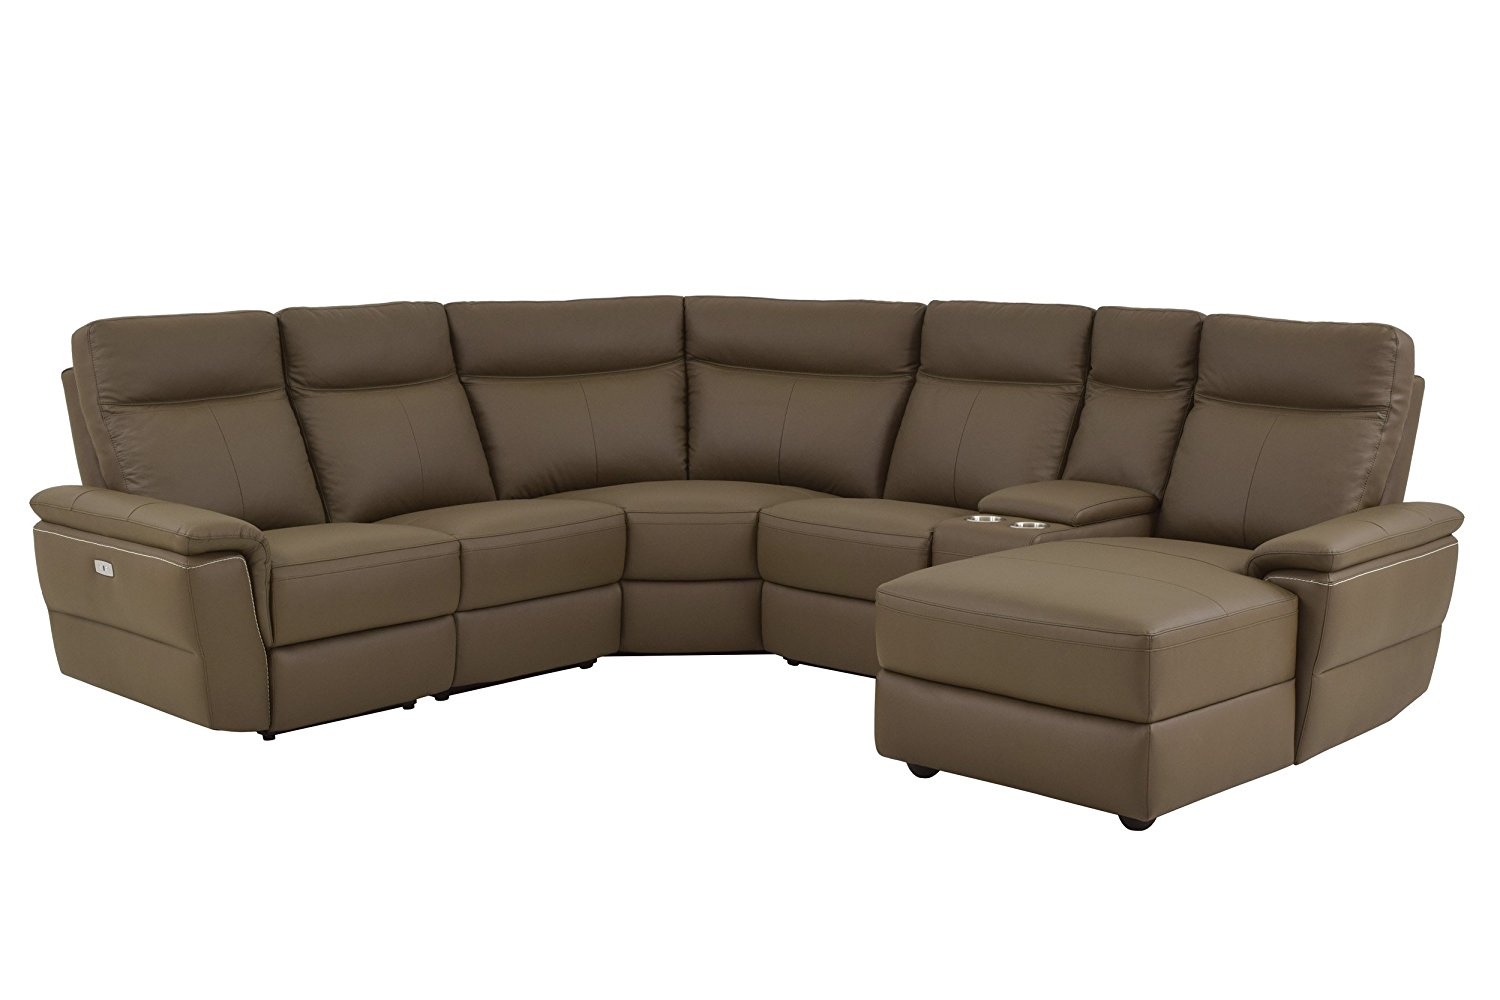 Plastic Sectional Sofa Covers